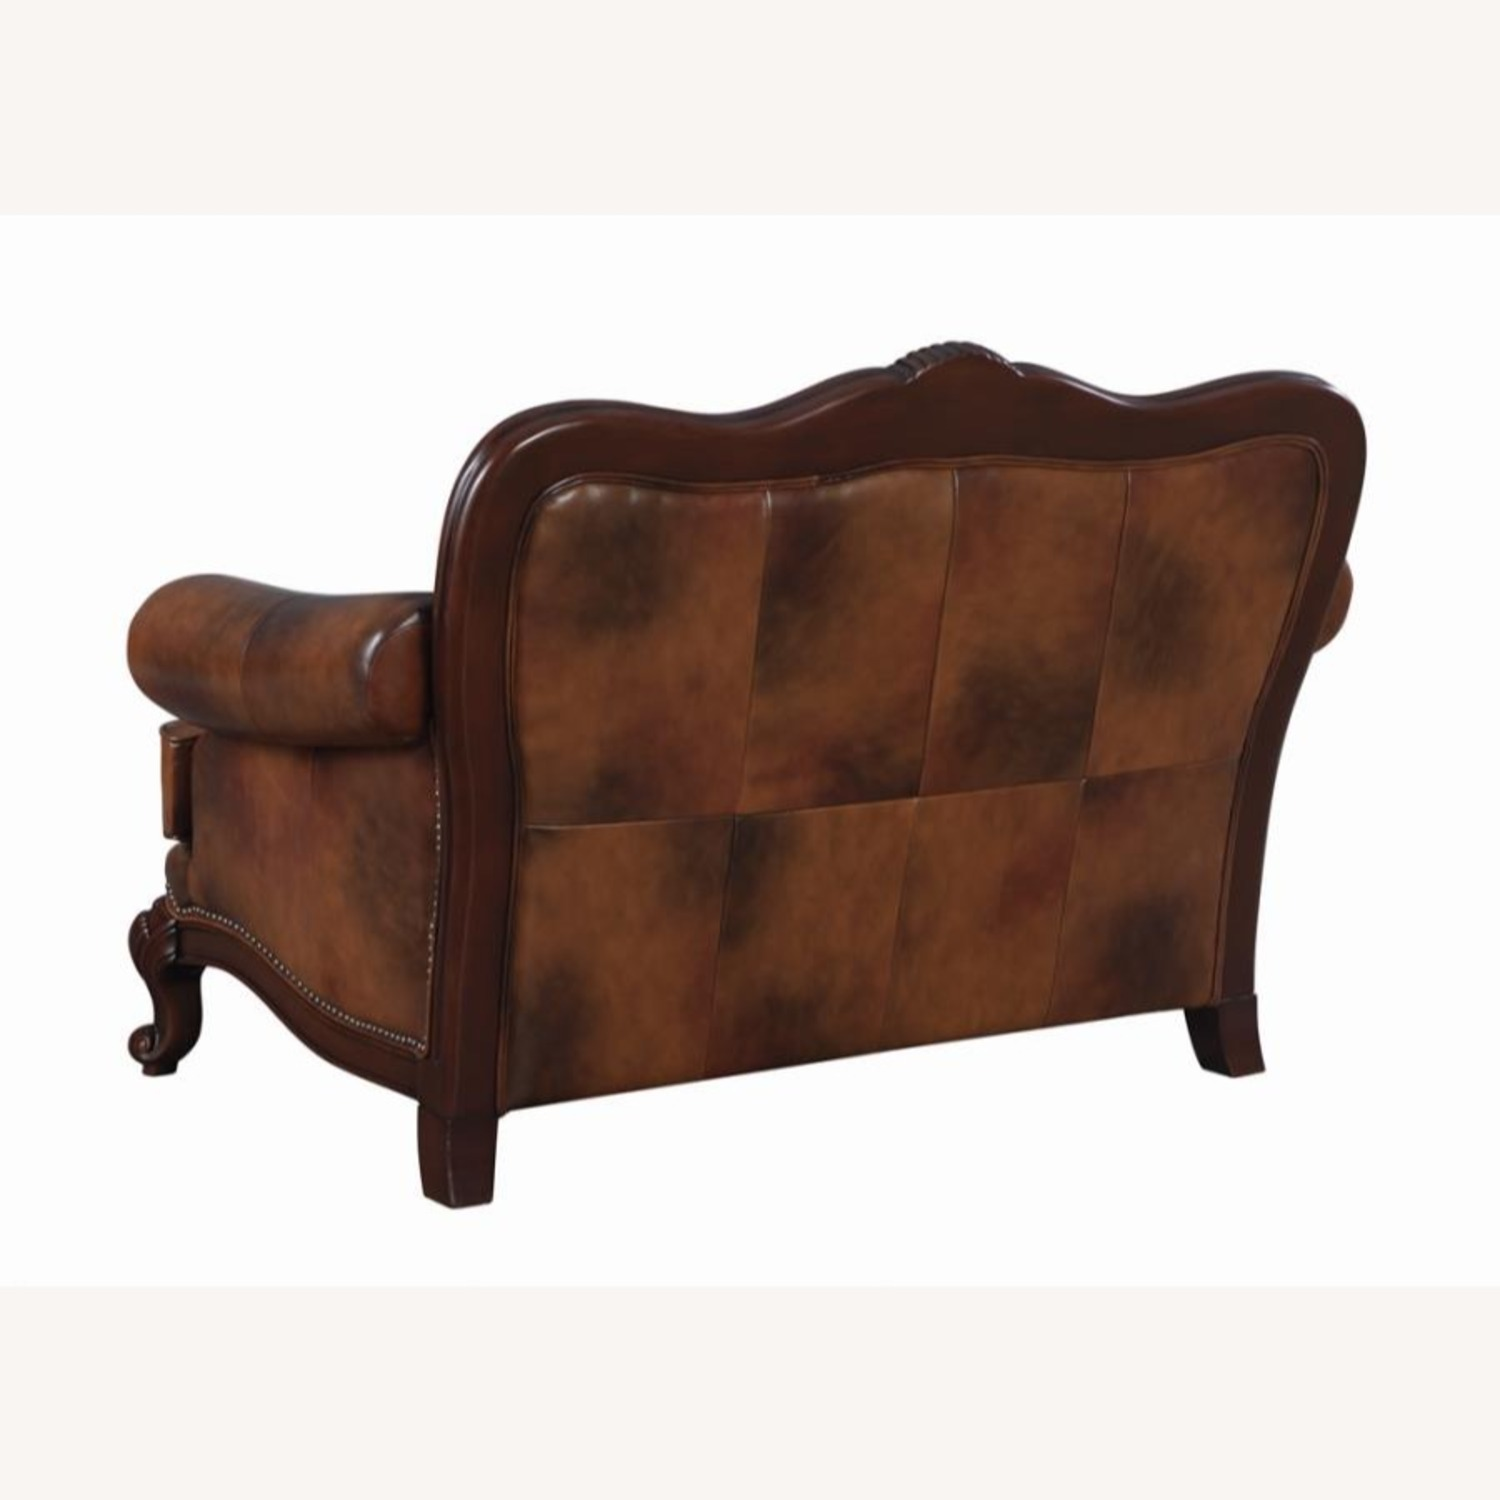 Loveseat In Tri-Tone Leather Finish - image-1